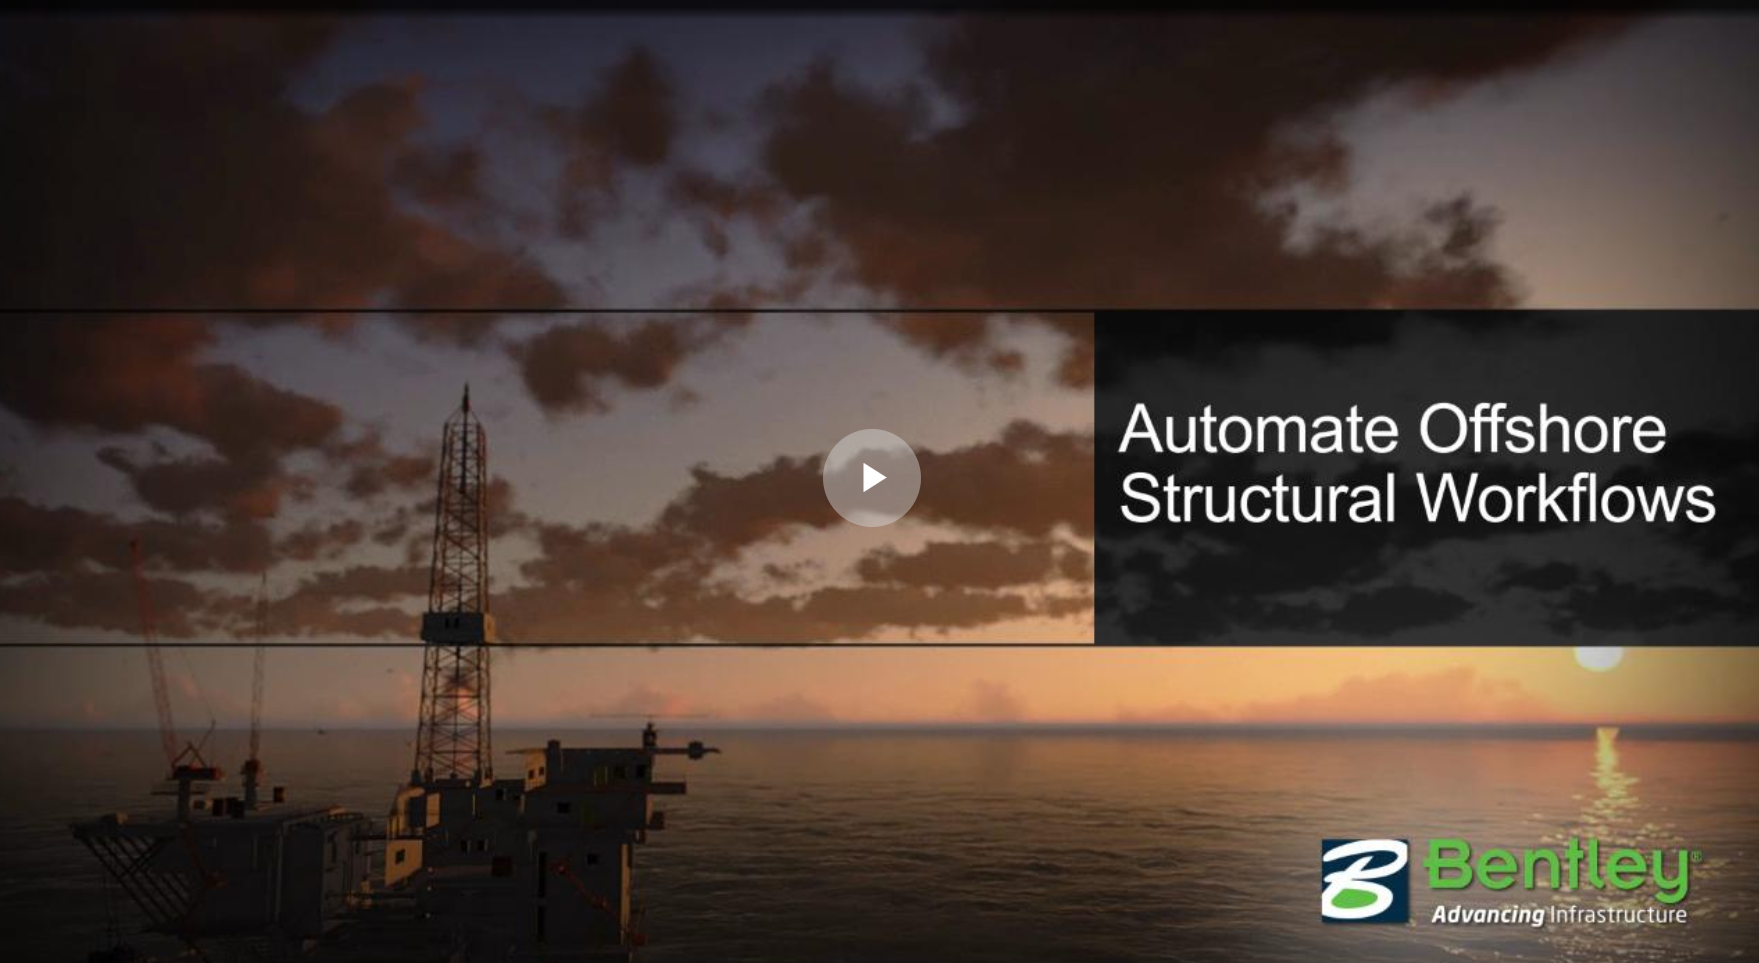 SACS_Automate_Offshore_Structural_Workflows_Video_Thumb